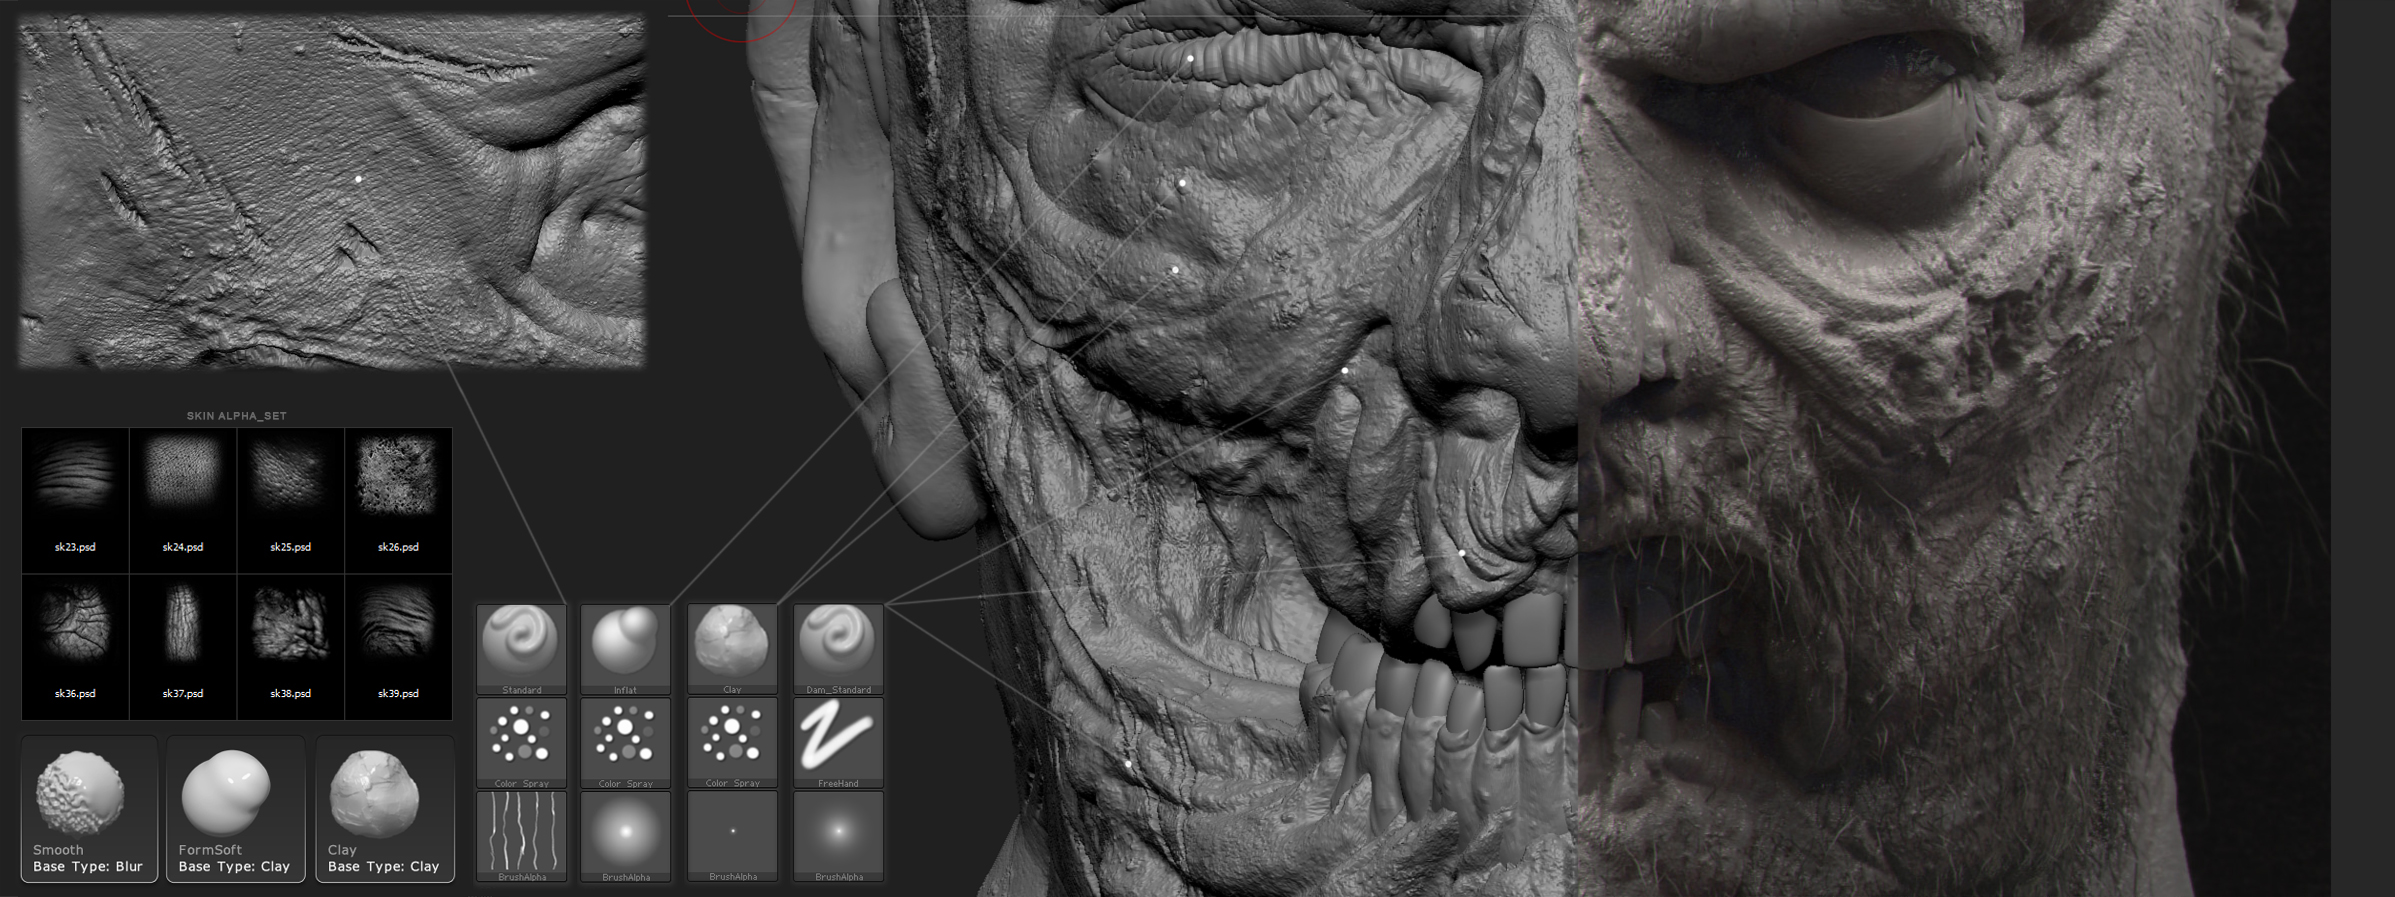 Tips and Tricks for High Poly Modeling with Zbrush, with